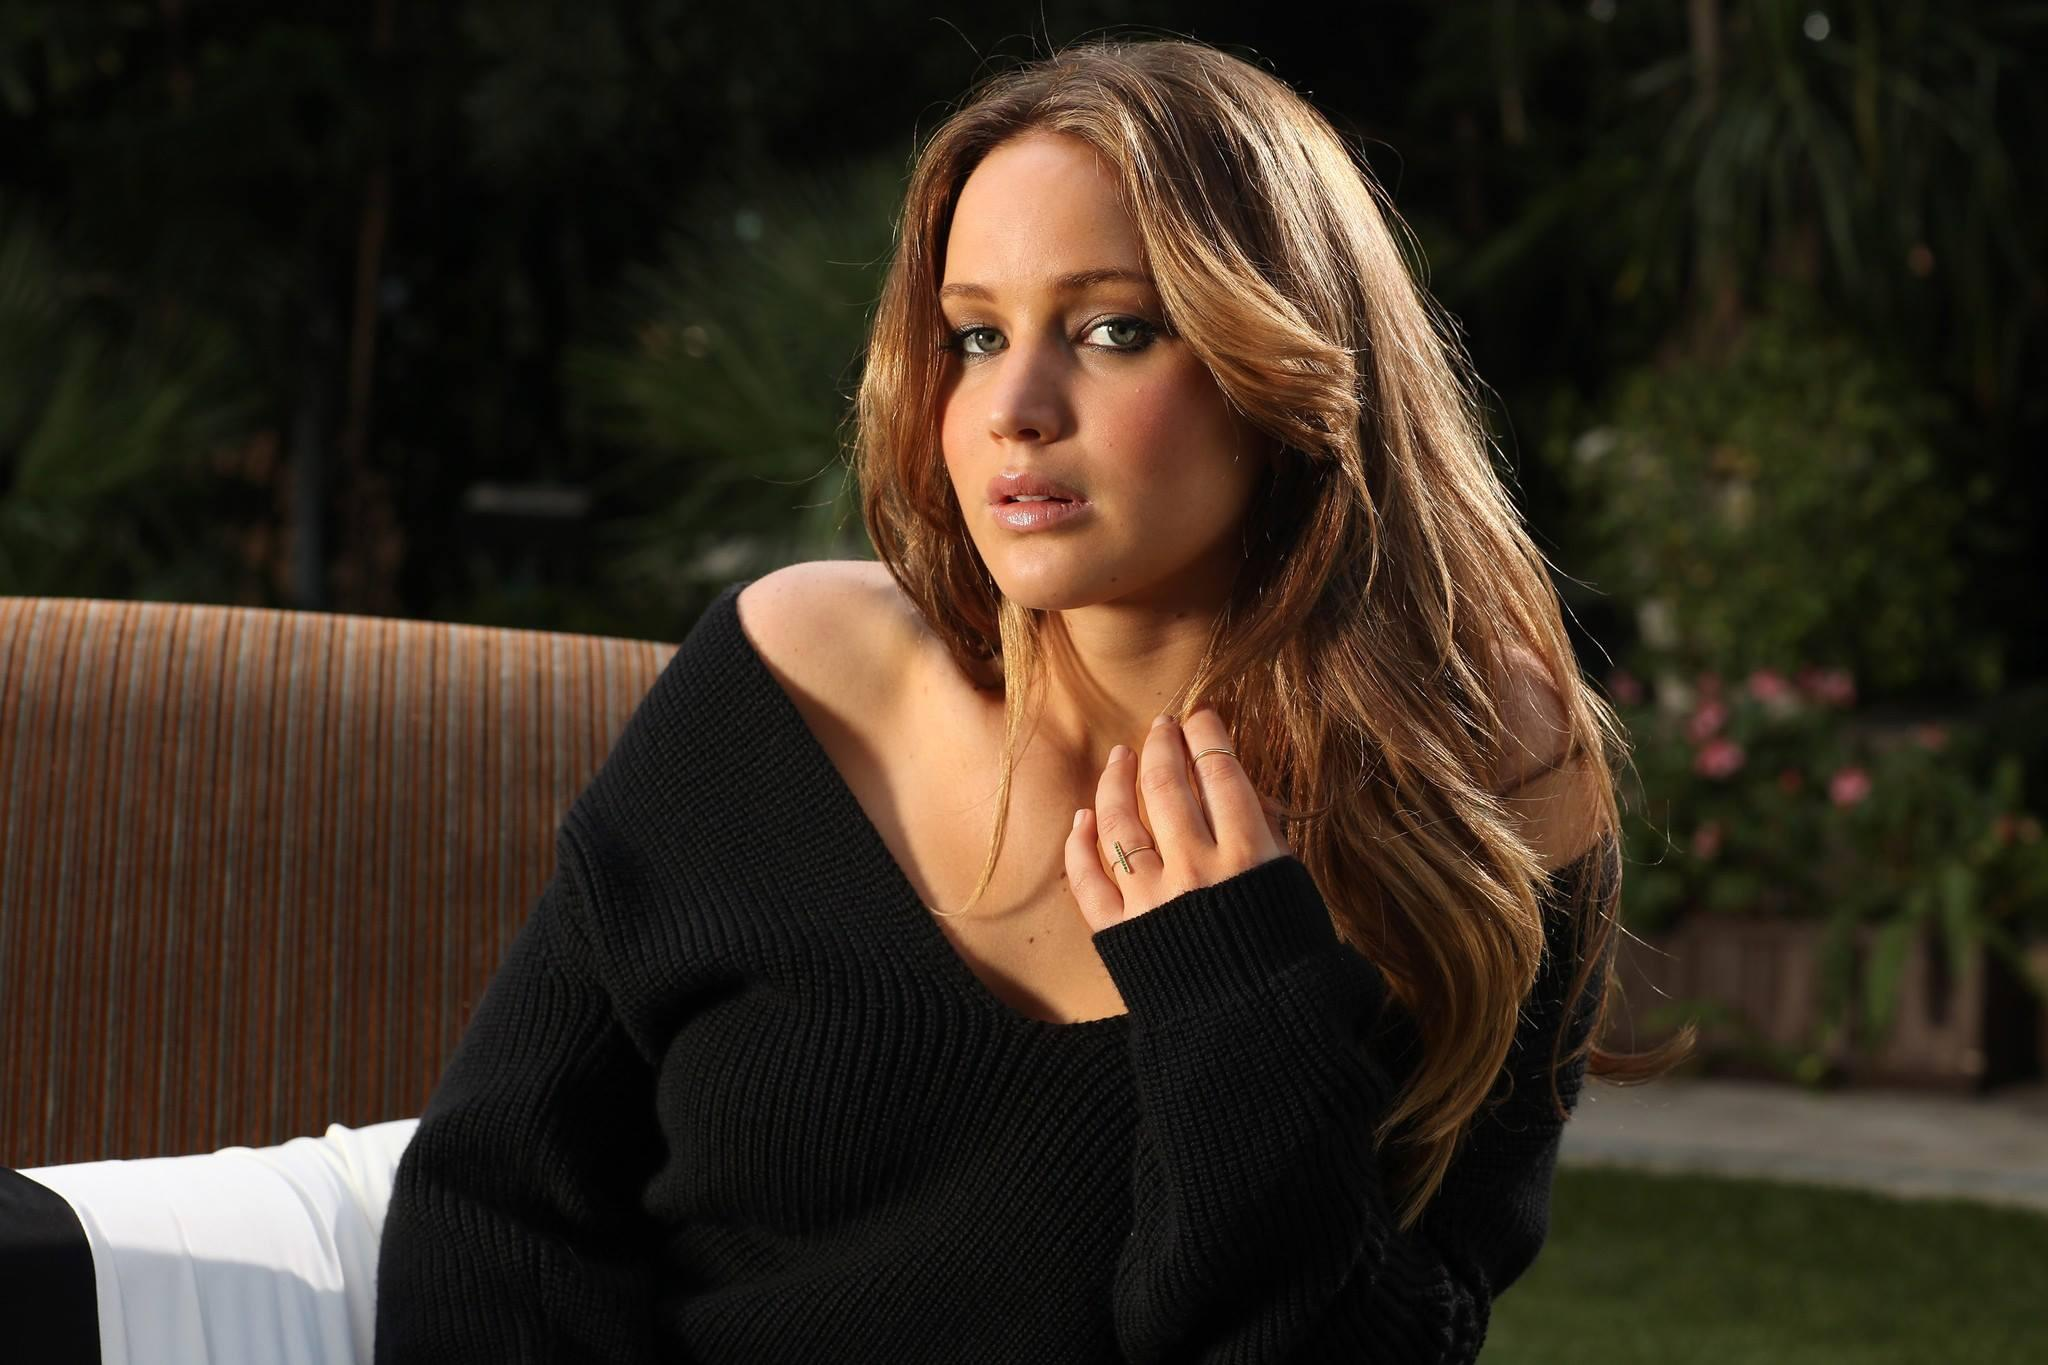 #1 New outtake of Jennifer Lawrence photographed by Kirk McKoy for the LA Times (2013) (credit: @the_jlawrence) http://t.co/z0adE34Unc